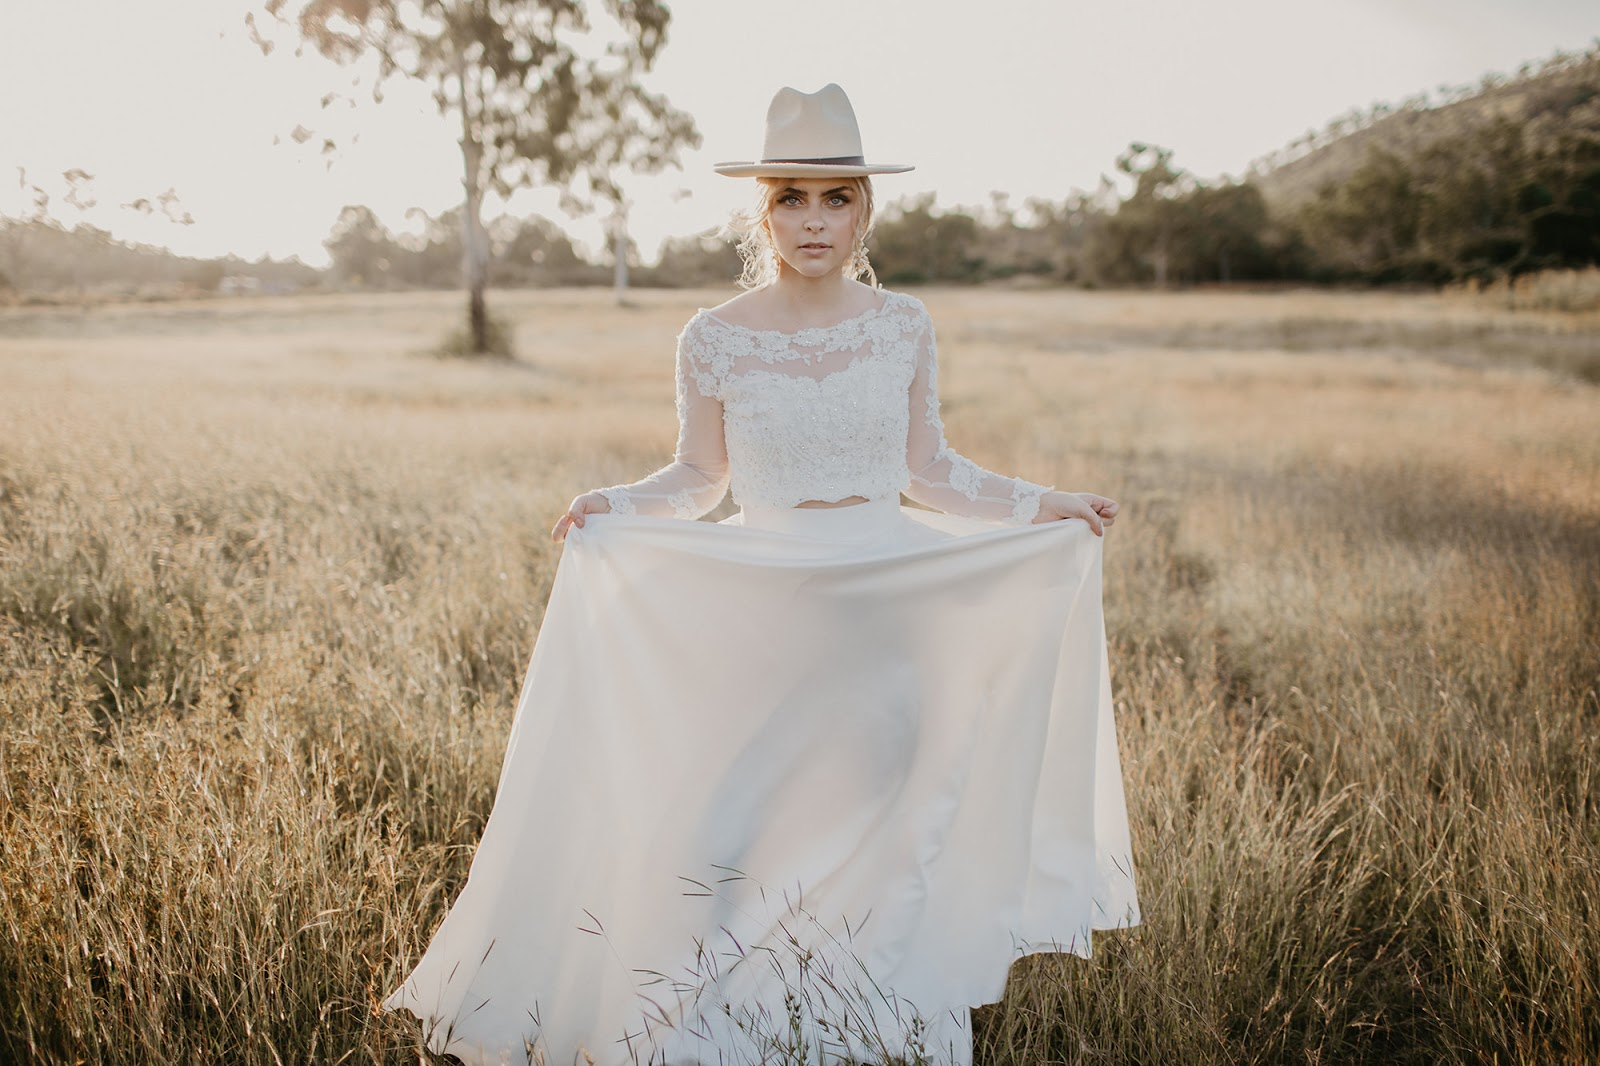 SWEET MARY PHOTOGRAPHY QUEENSLAND BOHEMIAN BRIDAL DESIGNERS WEDDING GOWN